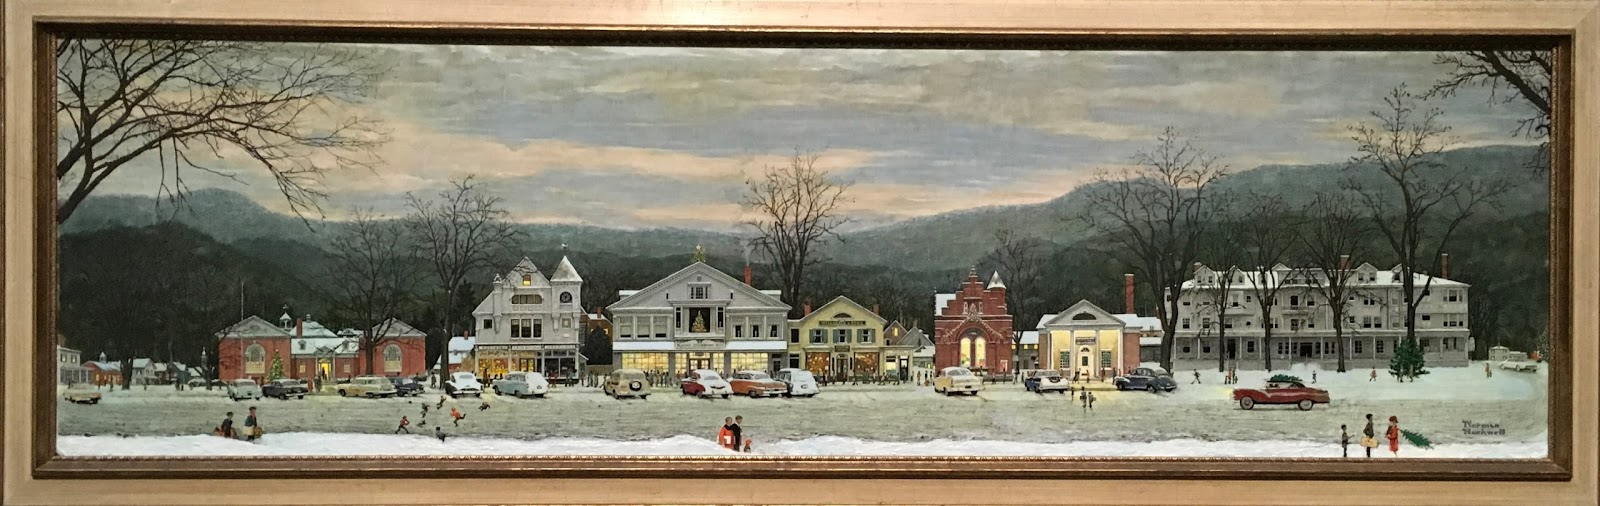 Life From The Roots: Christmas on Main St. with Norman Rockwell in ...